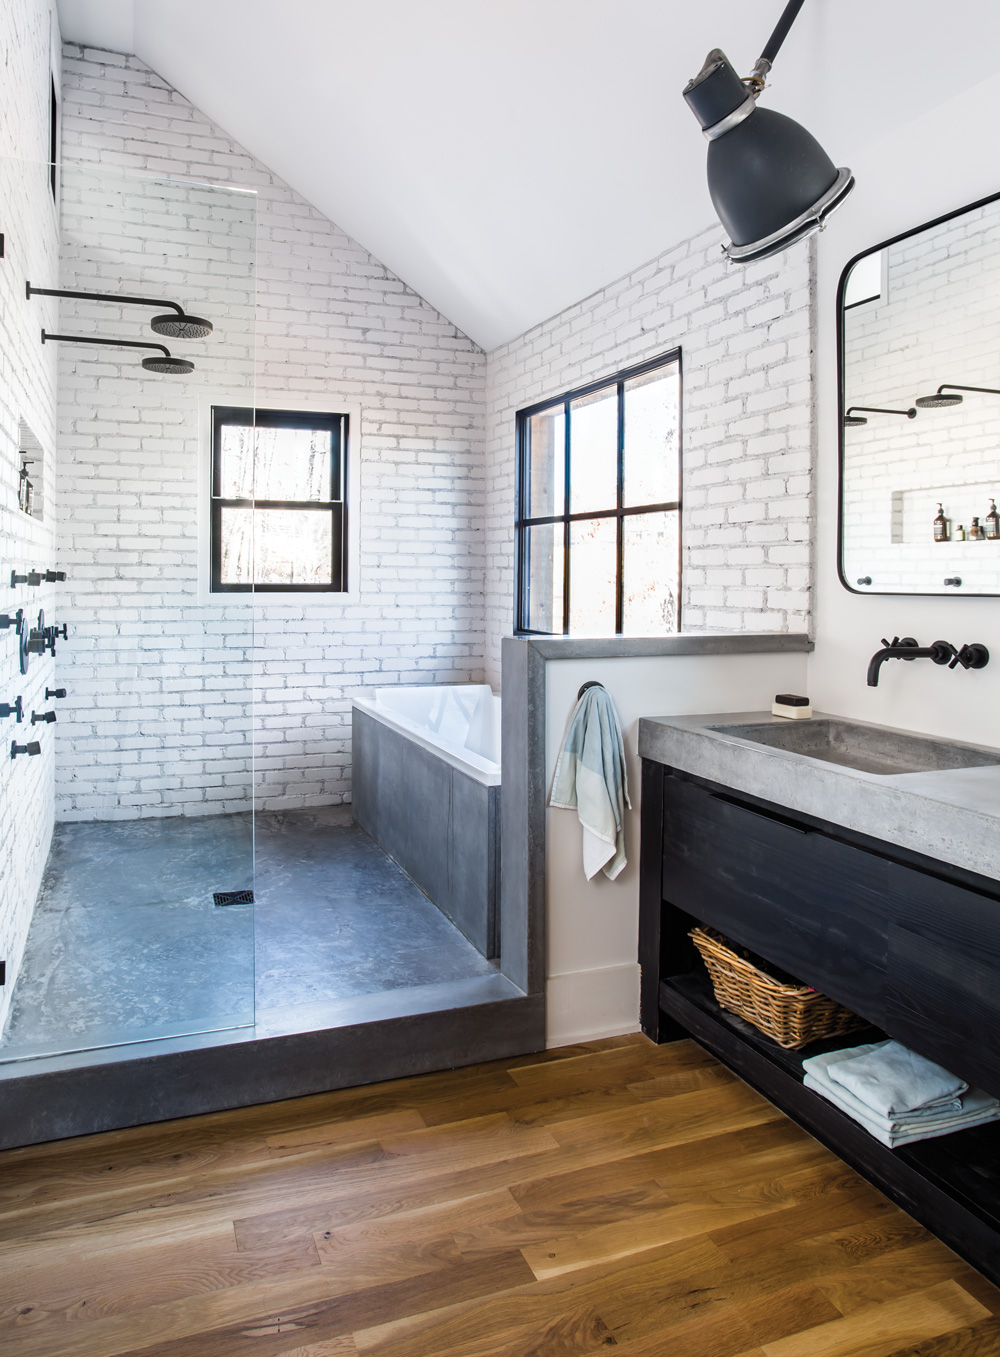 Room Envy: At Serenbe, a master bath with a modern ...